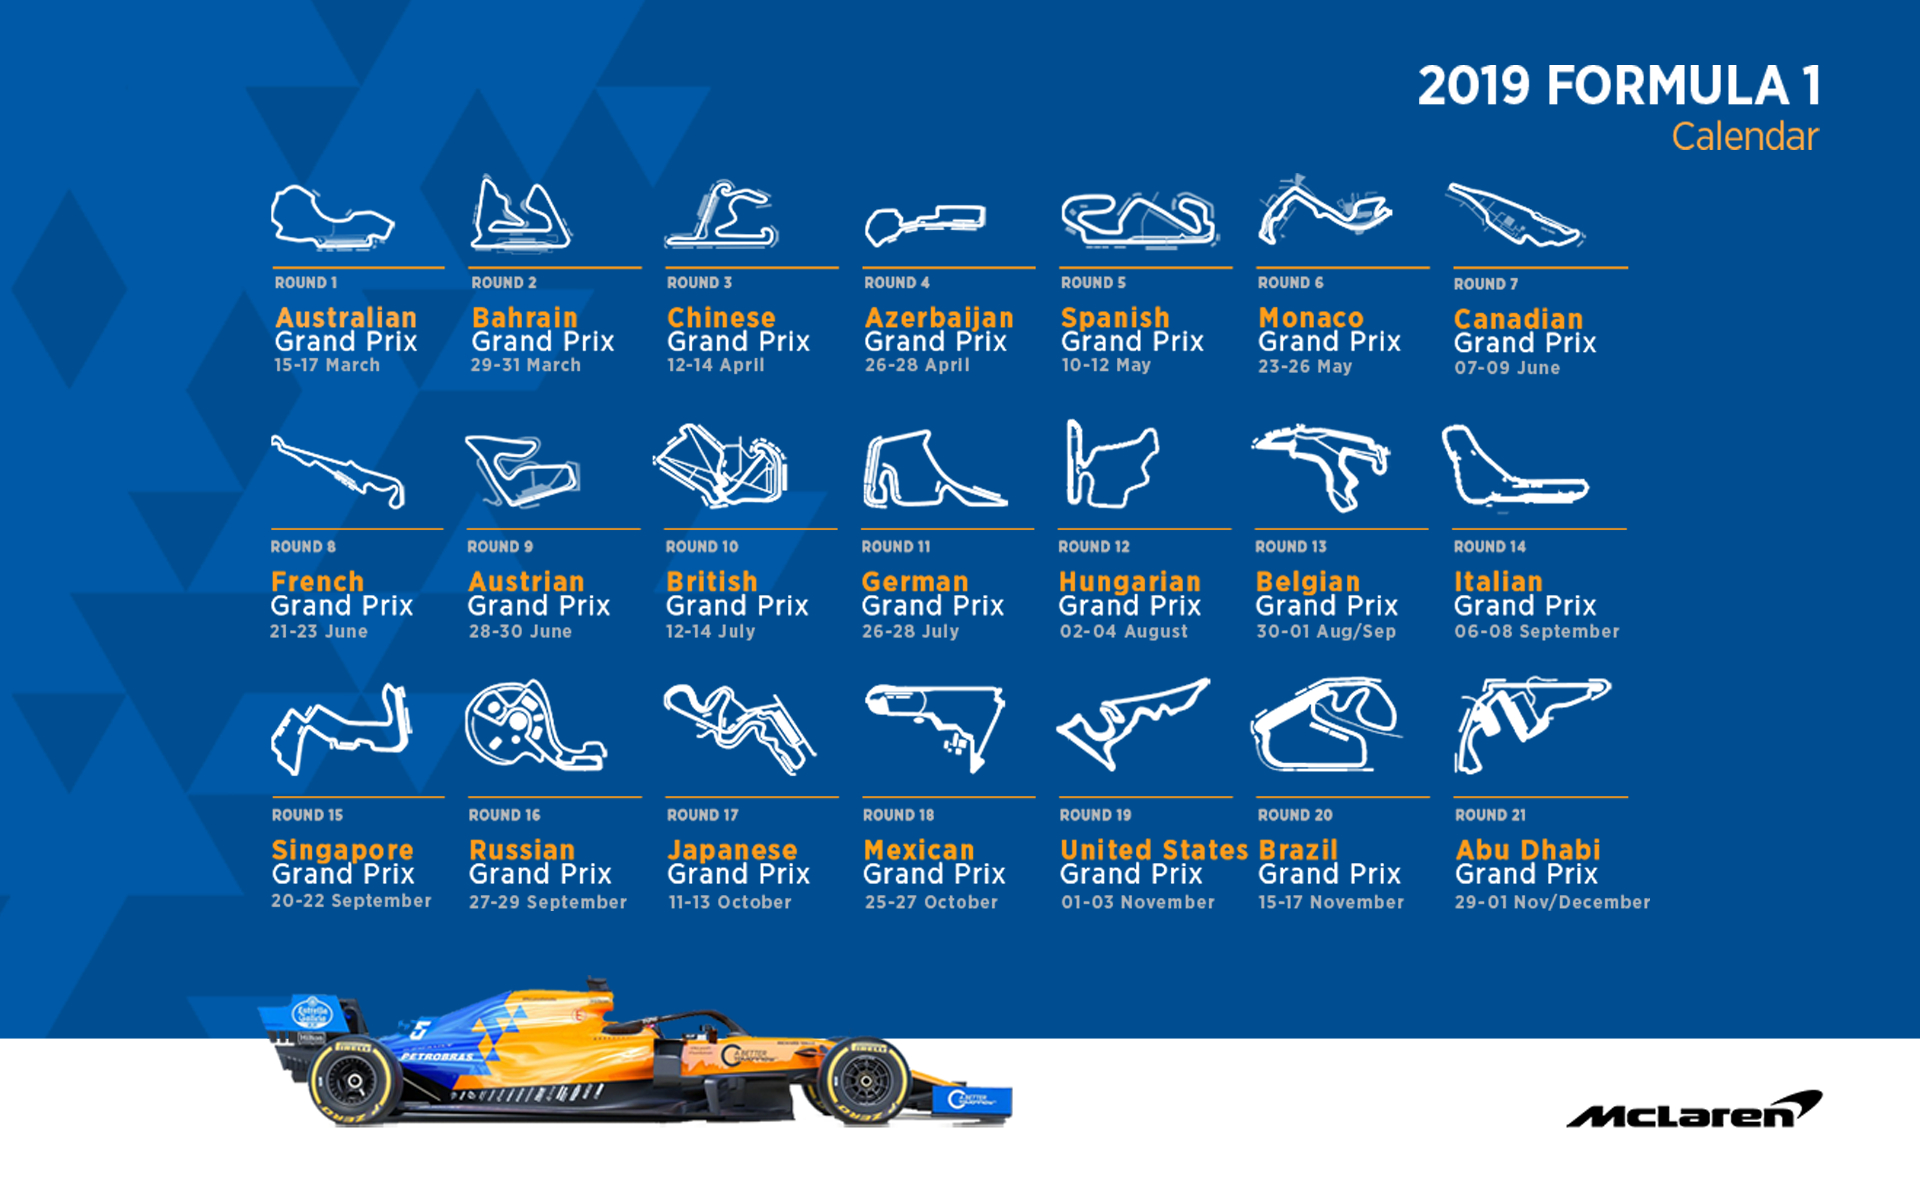 Mclaren Racing – Official Website Formula 1 Calendar 2019 Ical